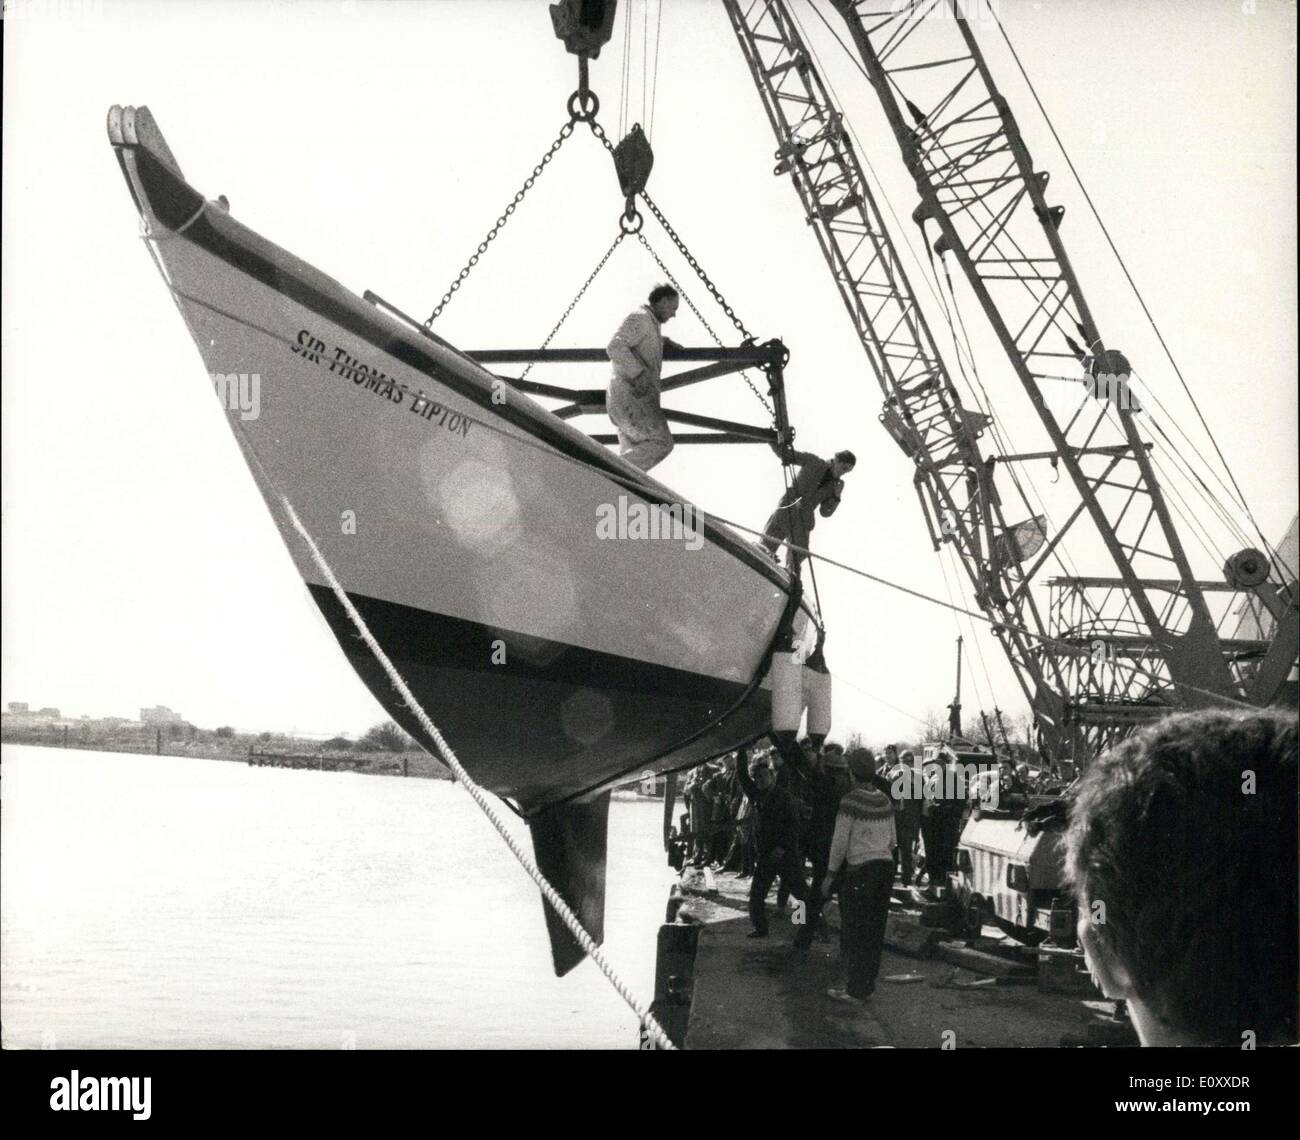 Mar. 10, 1968 - Transatlantic Race Hop Is Launched. The 57-foot sir Thomas Lipton, the largest British yacht entered for the 1968 Singlehanded Trans-Atalntic race, was launched this weekend at Snadwich Kent. Built by her owner and helmsman, 25-year old Oxford graduate, Geoffrey Williams, and Derek Kelsall, the 12-ton yacht had the forward wheels of the mobile cranes used for the launch lifting off the ground as they eased her into the muddy waters of the River tour at Richborough quay - Stock Image